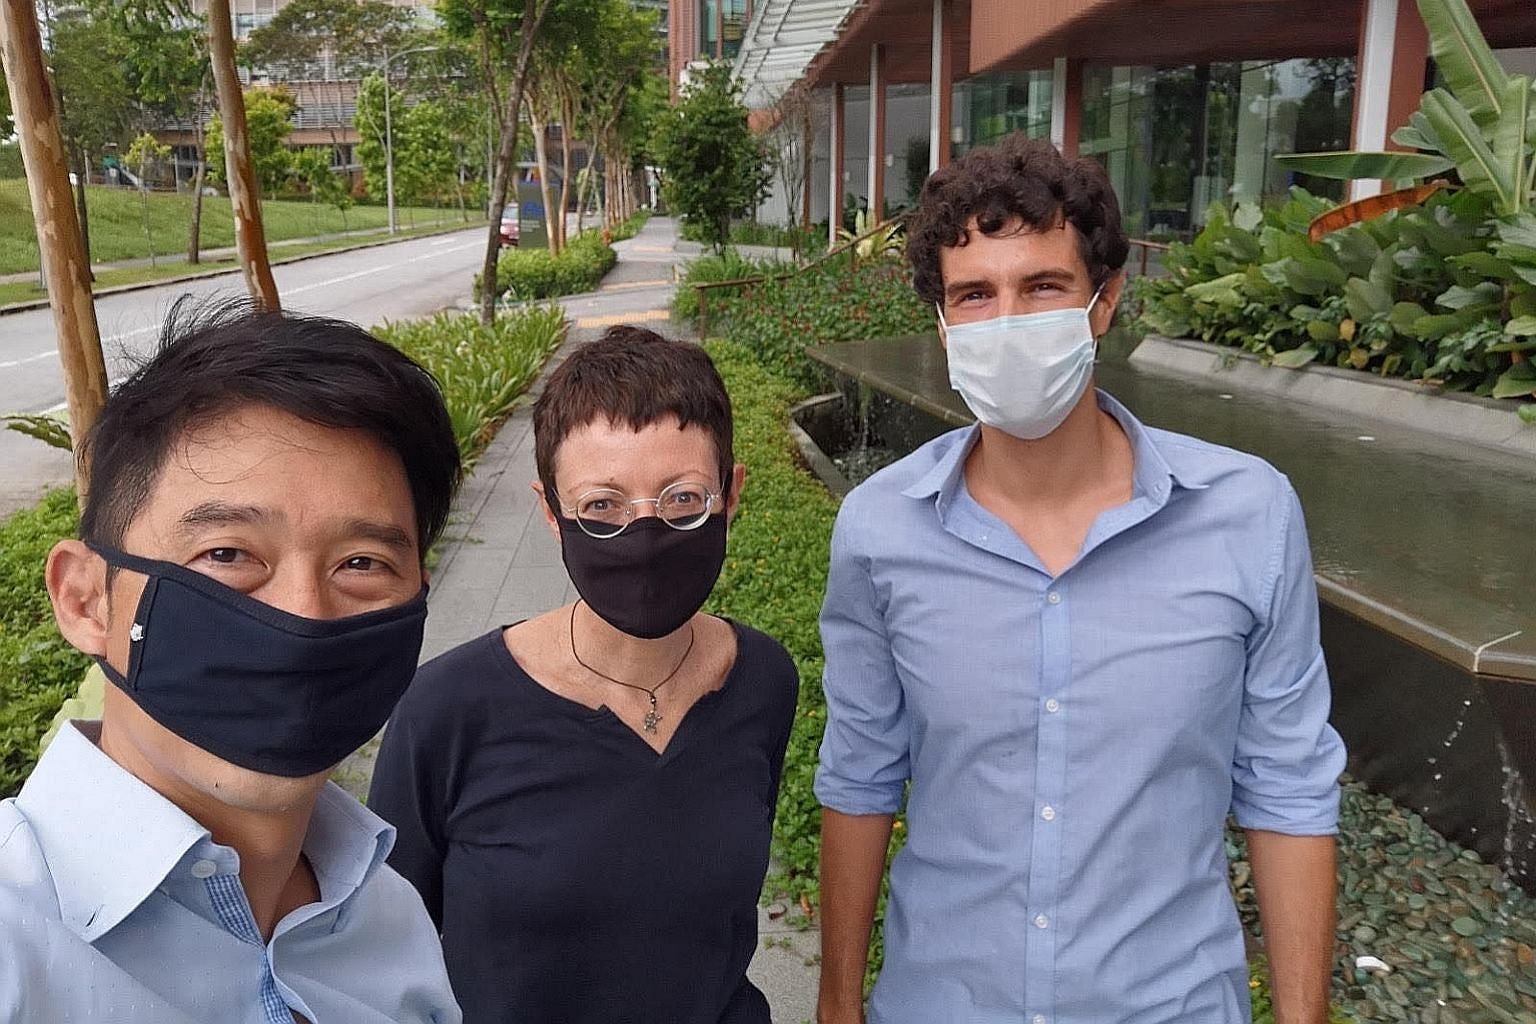 (From left) Immunoscape's chief executive Ng Choon Peng, its chief operating officer Alessandra Nardin, and its associate director and head of technology development Yannick Simoni. PHOTO: IMMUNOSCAPE